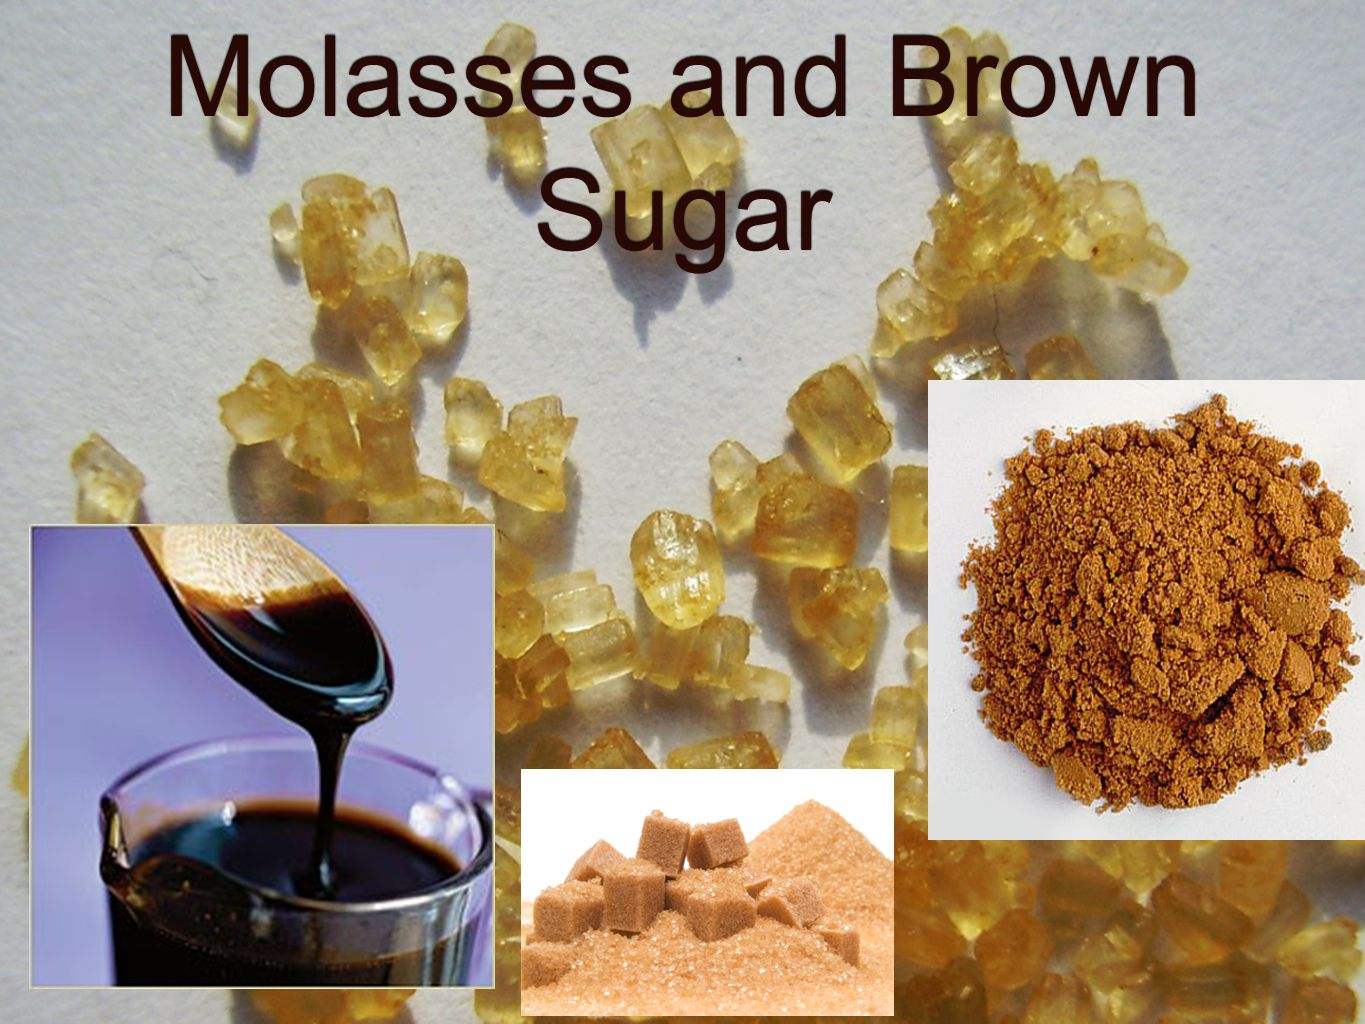 Molasses and Brown Sugar